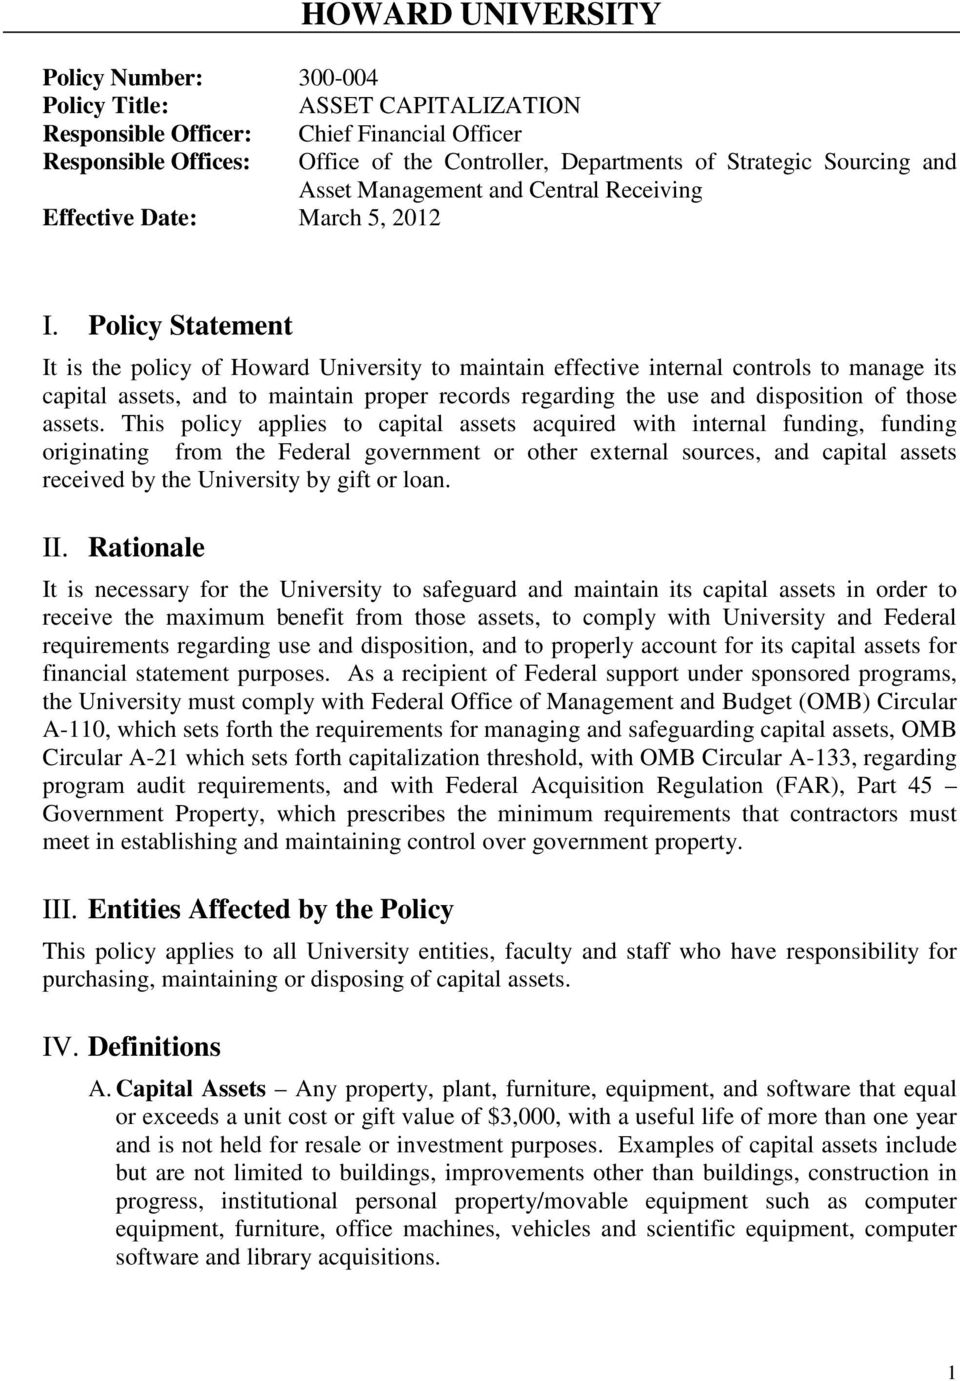 Policy Statement It is the policy of Howard University to maintain effective internal controls to manage its capital assets, and to maintain proper records regarding the use and disposition of those